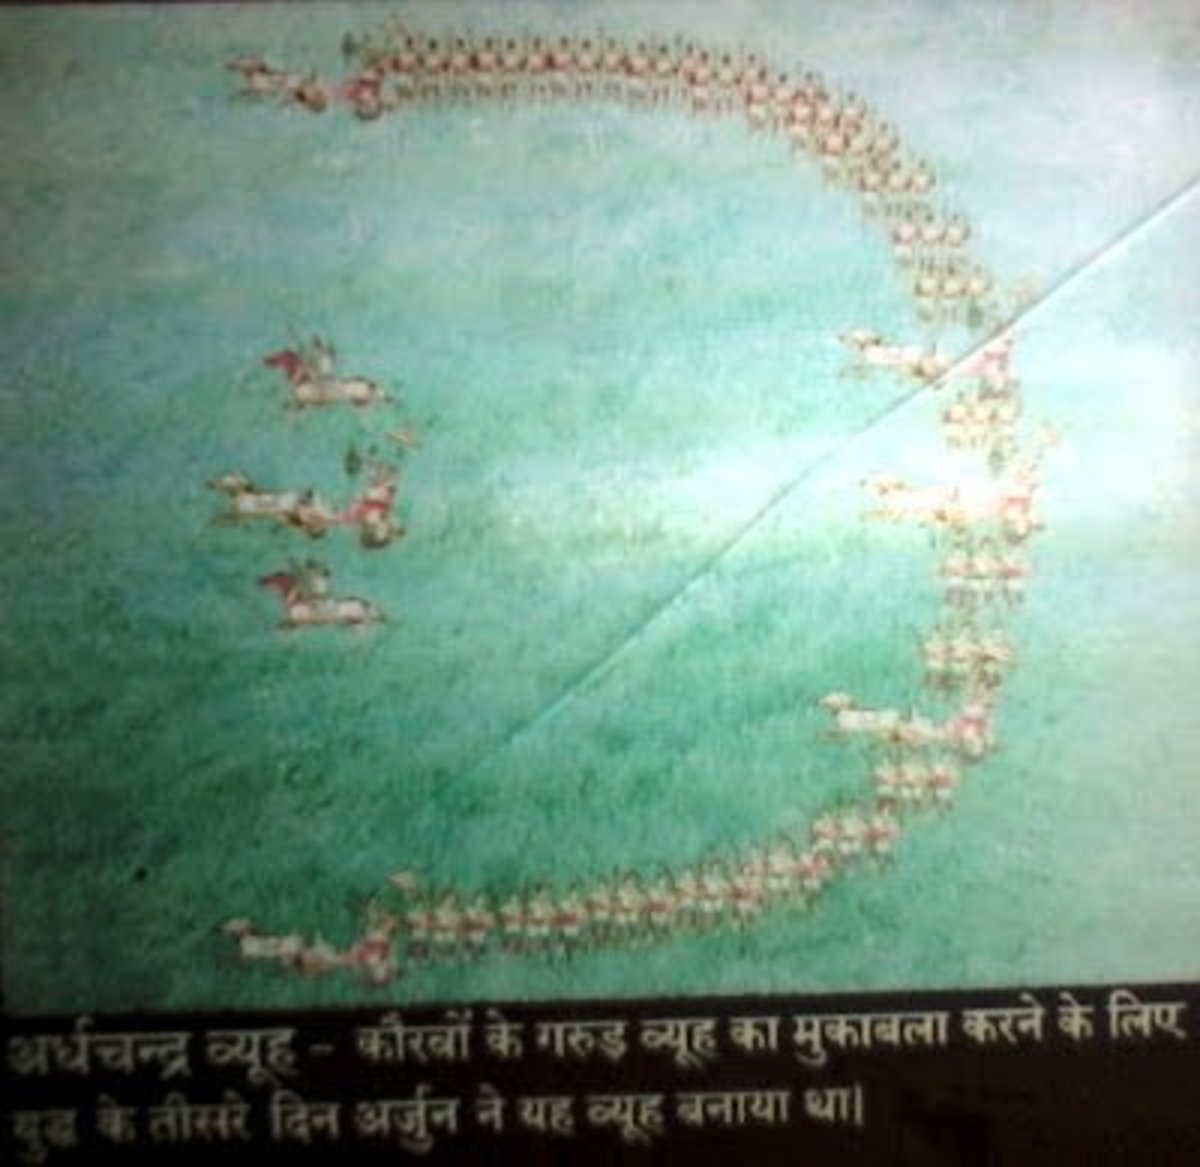 Chandra Vyuh (Cresent of Moon-like military formation ) of Pandav army